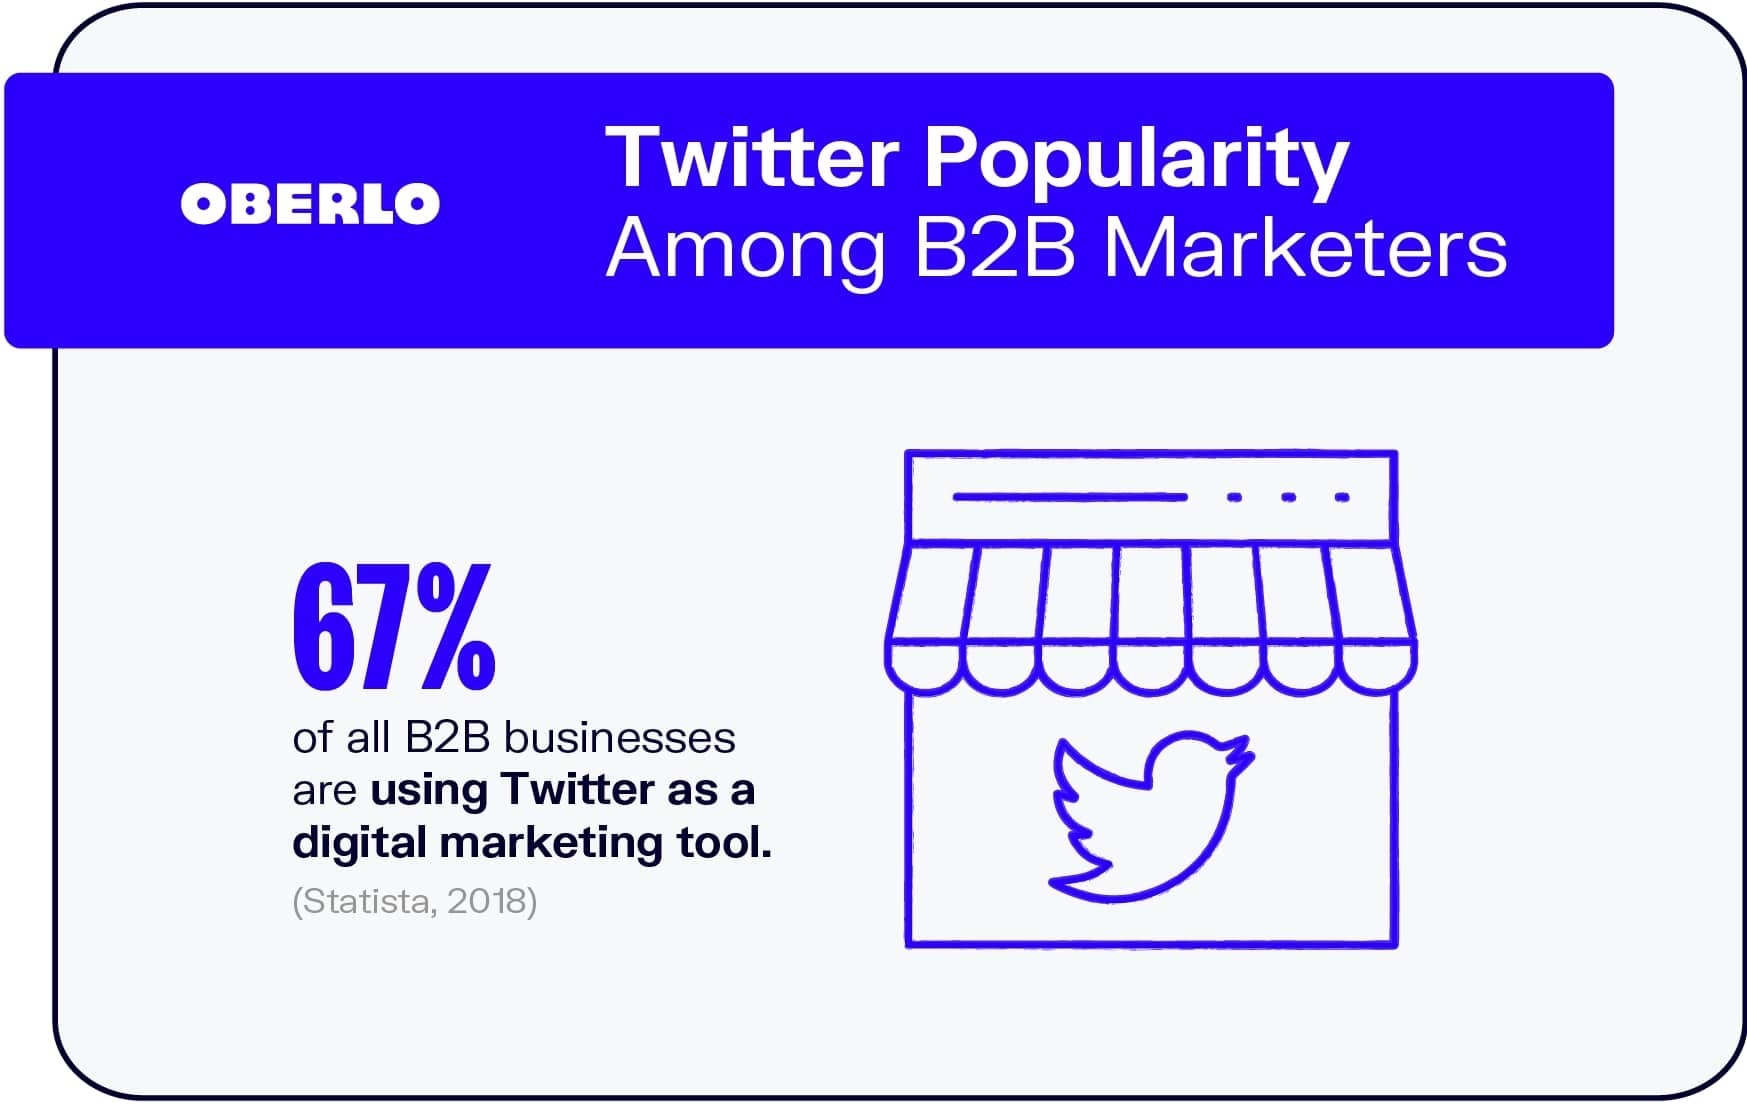 Twitter Popularity Among B2B Marketers